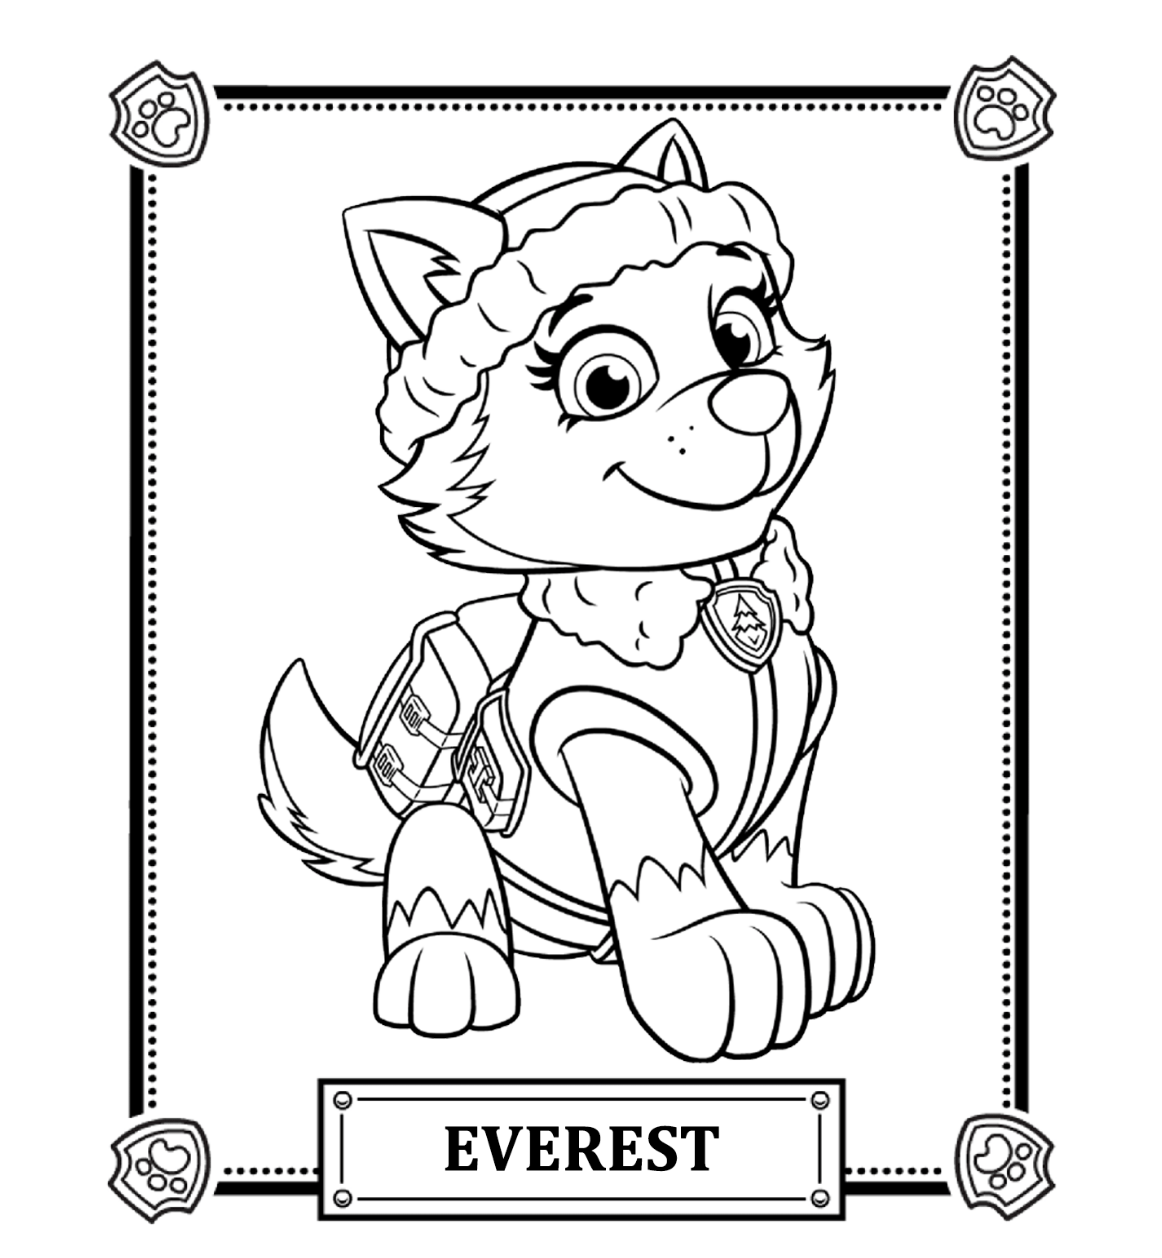 Paw Patrol Coloring Pages Best Coloring Pages For Kids Paw Patrol Coloring Paw Patrol Coloring Pages Paw Patrol Printables